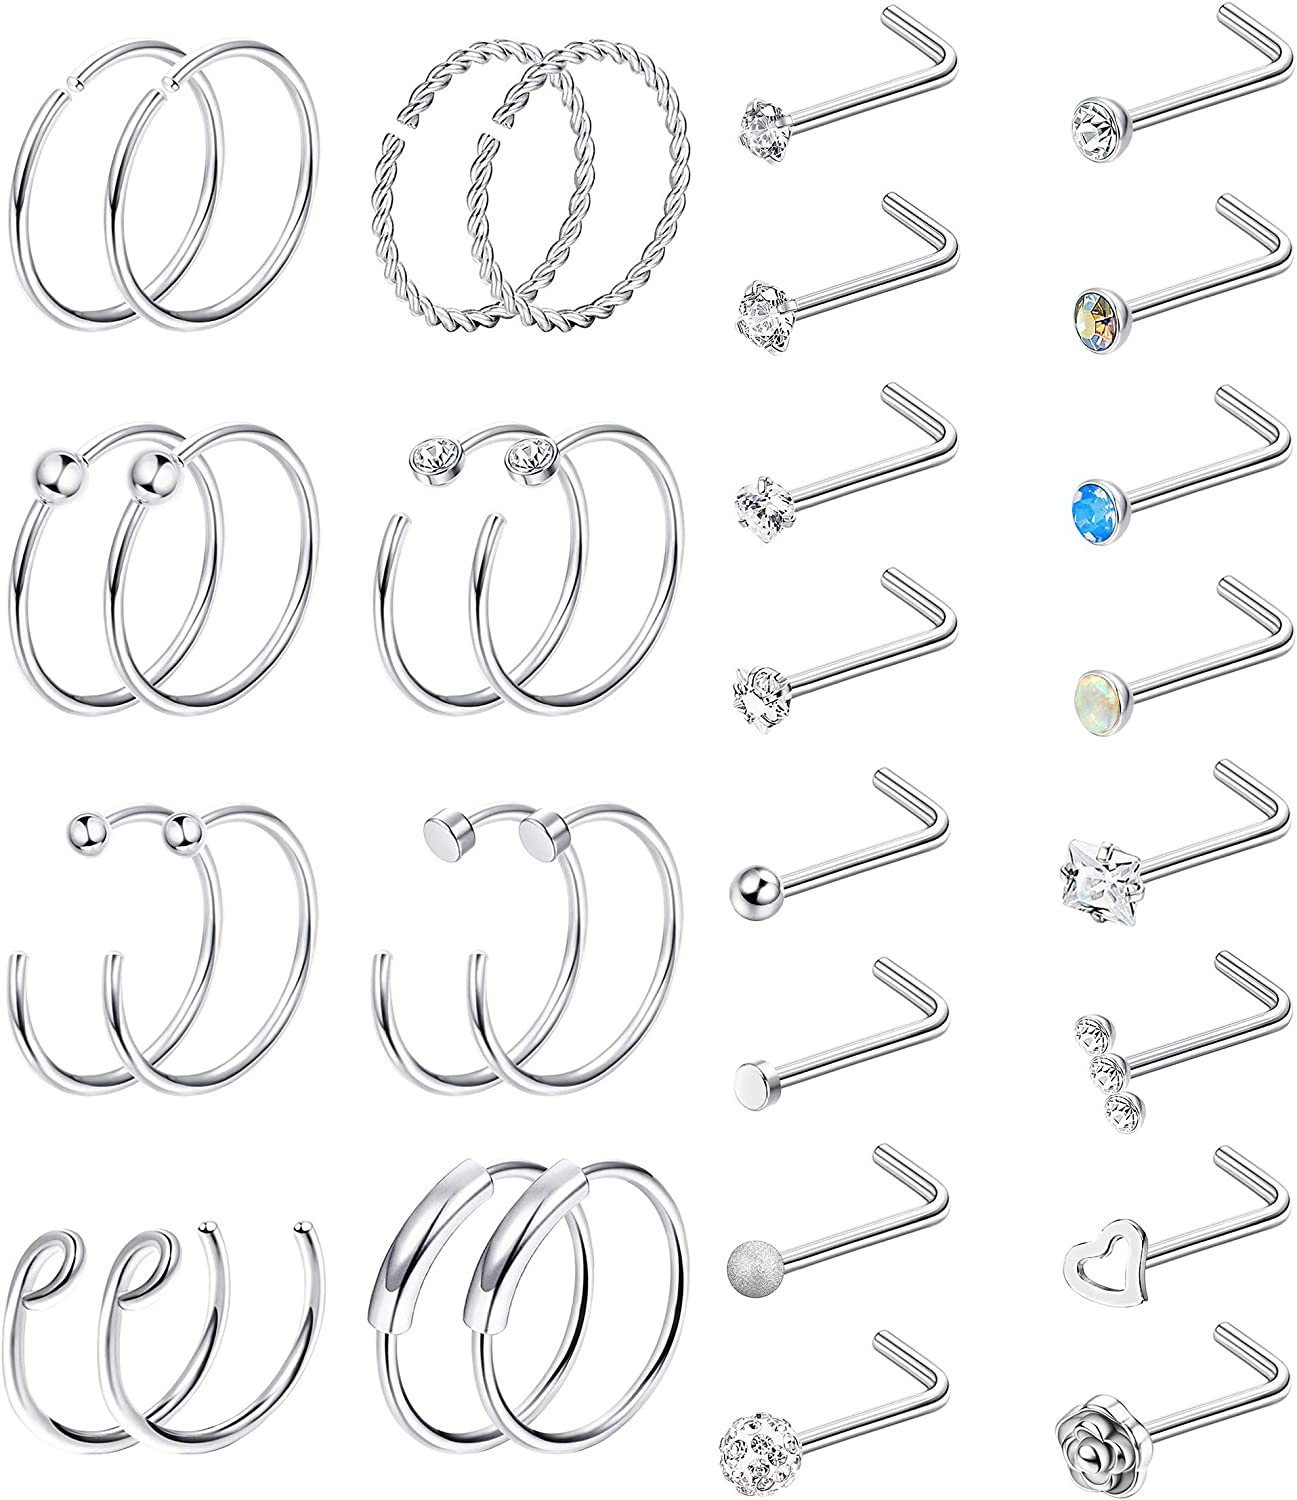 Subiceto 20G Stainless Steel Nose Rings Bone L Screw Shape Nose